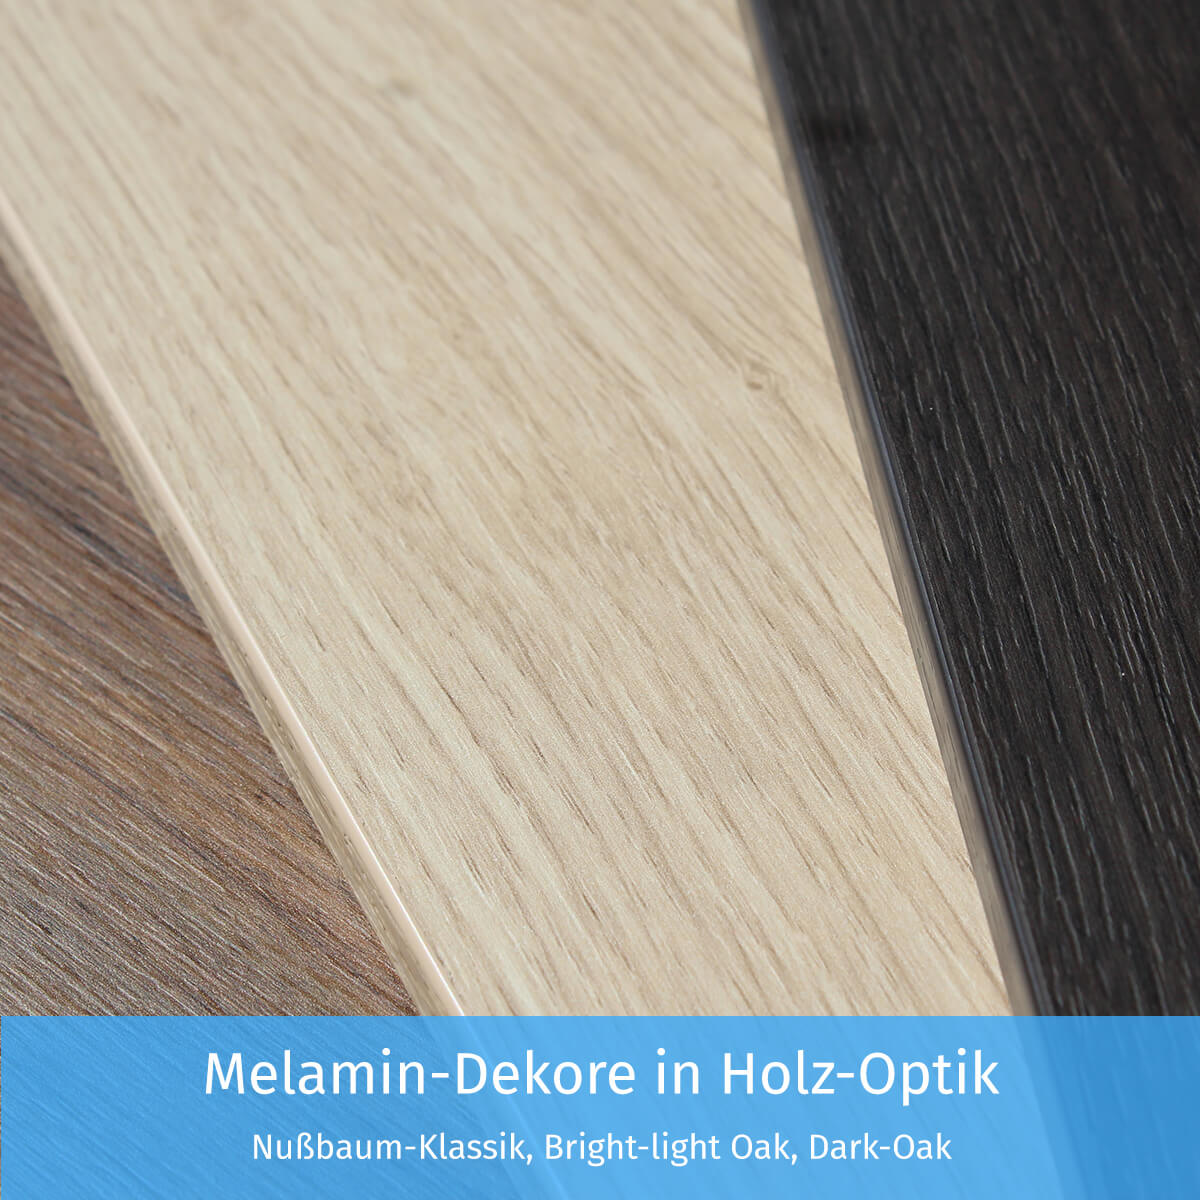 Melamin-Dekore in Holz-Optik